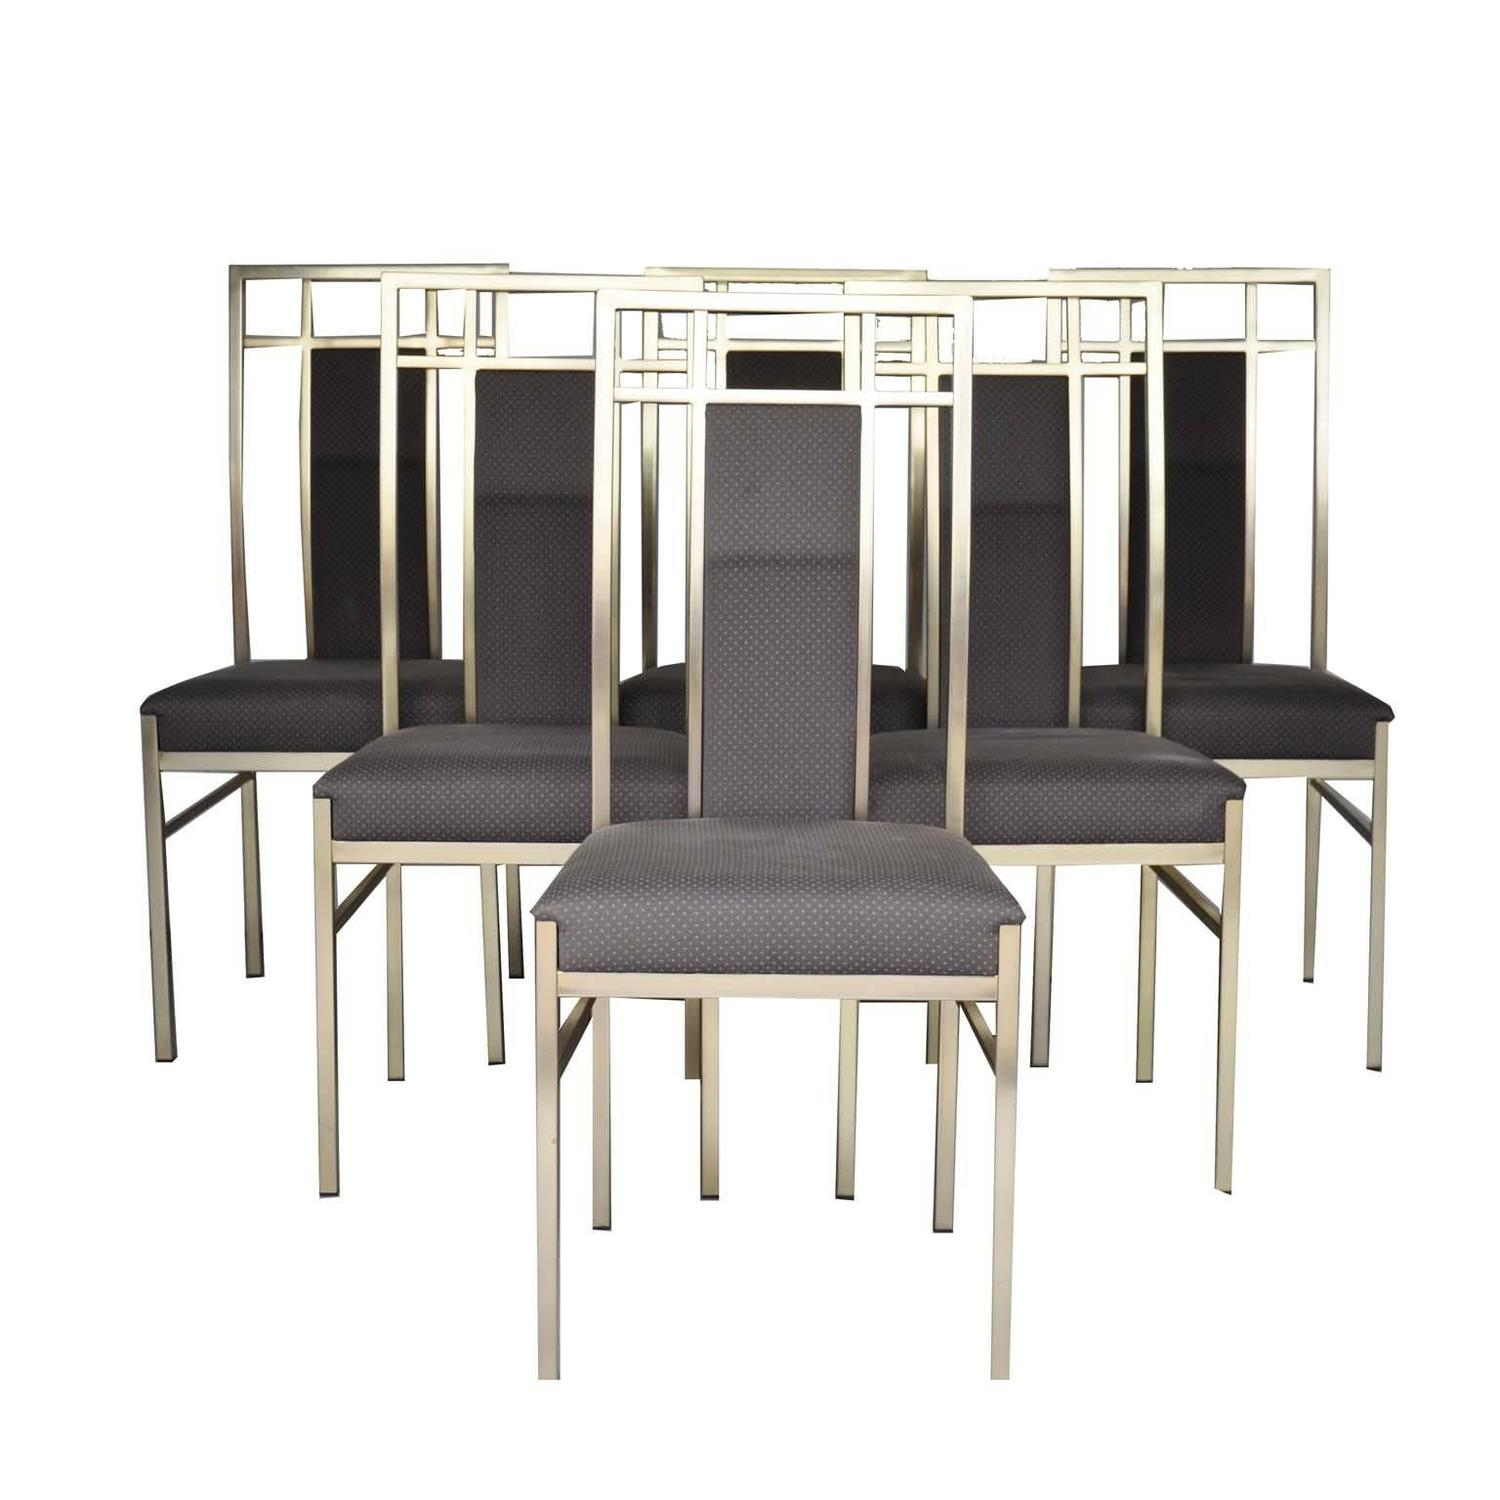 gold dining chairs desk for bad backs uk italian set of in metal and fabric